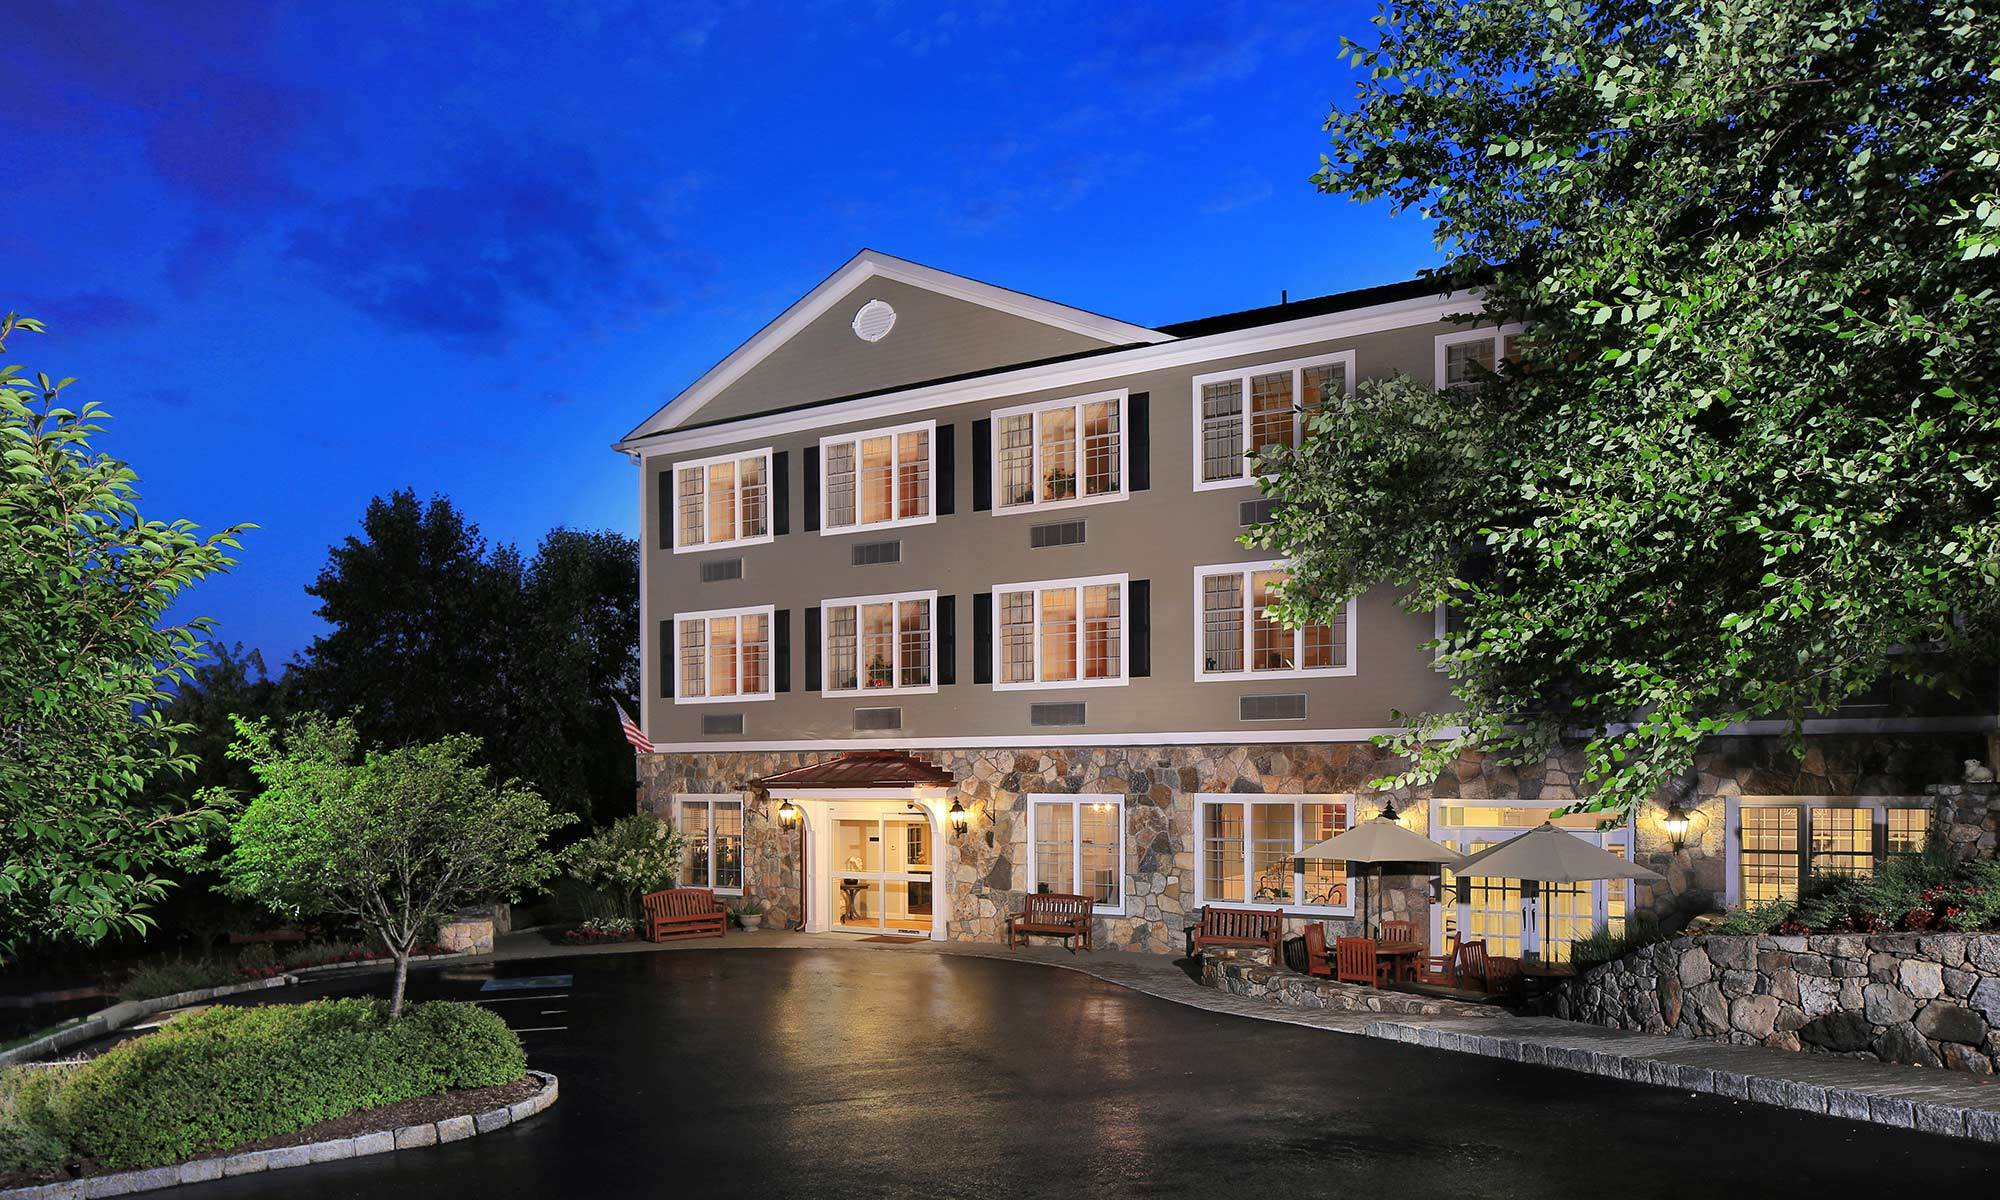 Senior living in Danbury, CT